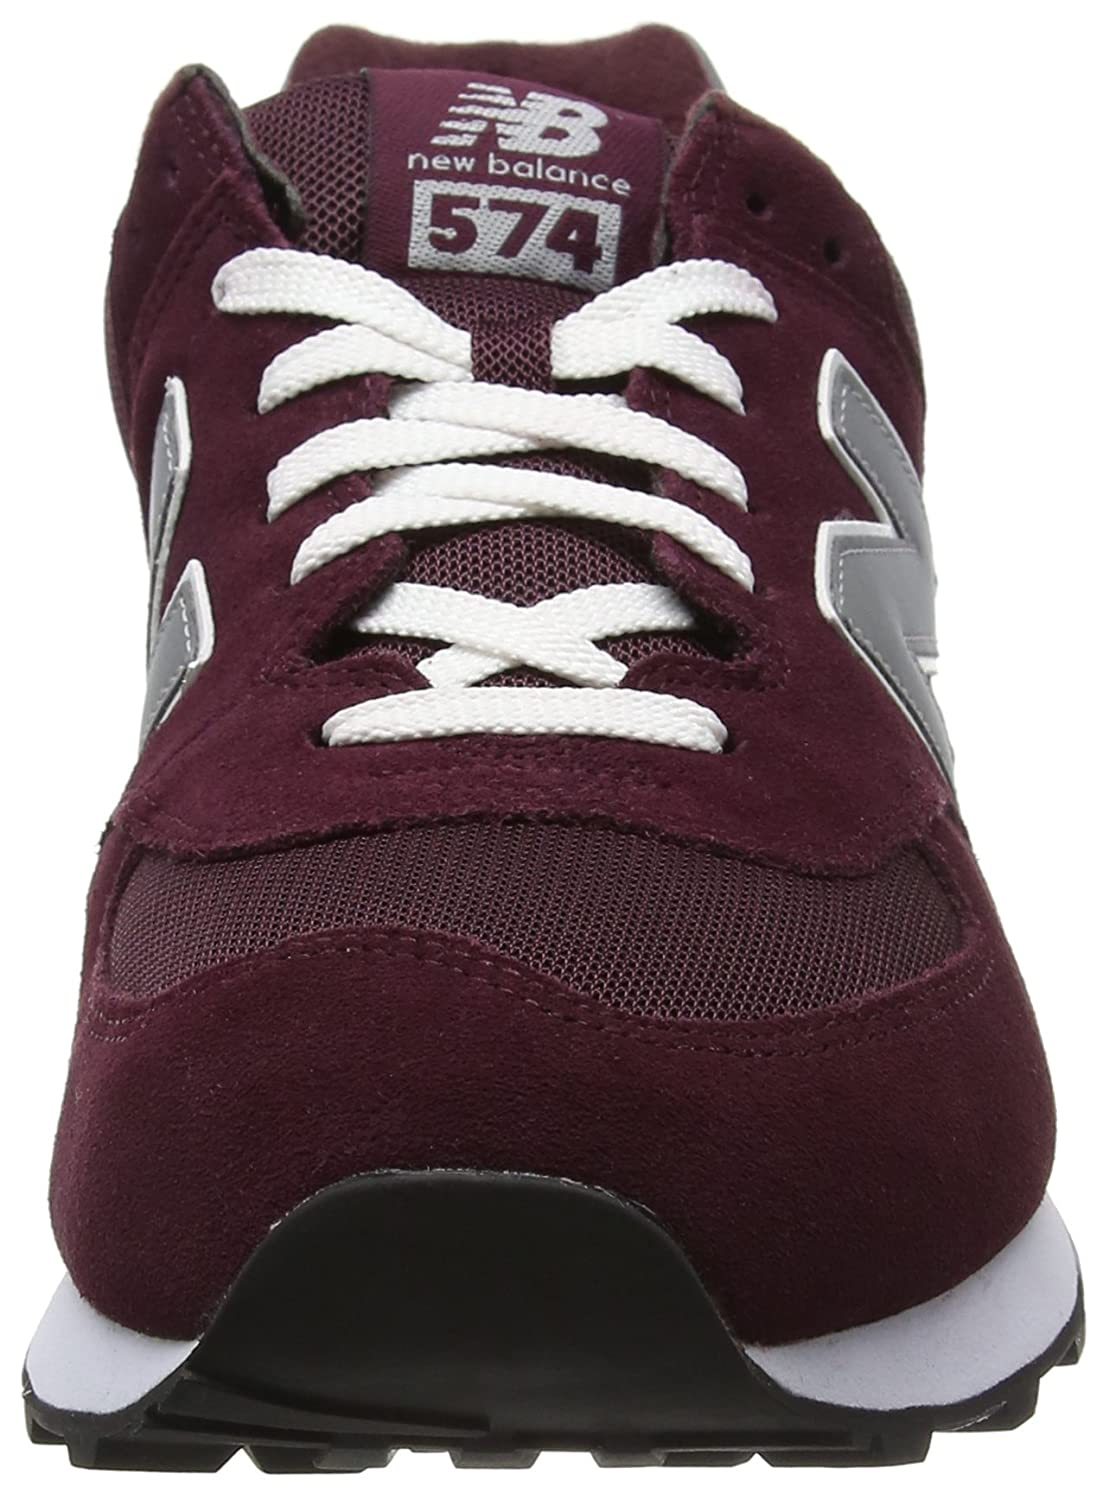 New Balance New M574, Men s Low-Top Sneakers Low-Top Red Red (Burgundy)  5193e29 5e6a9572fb